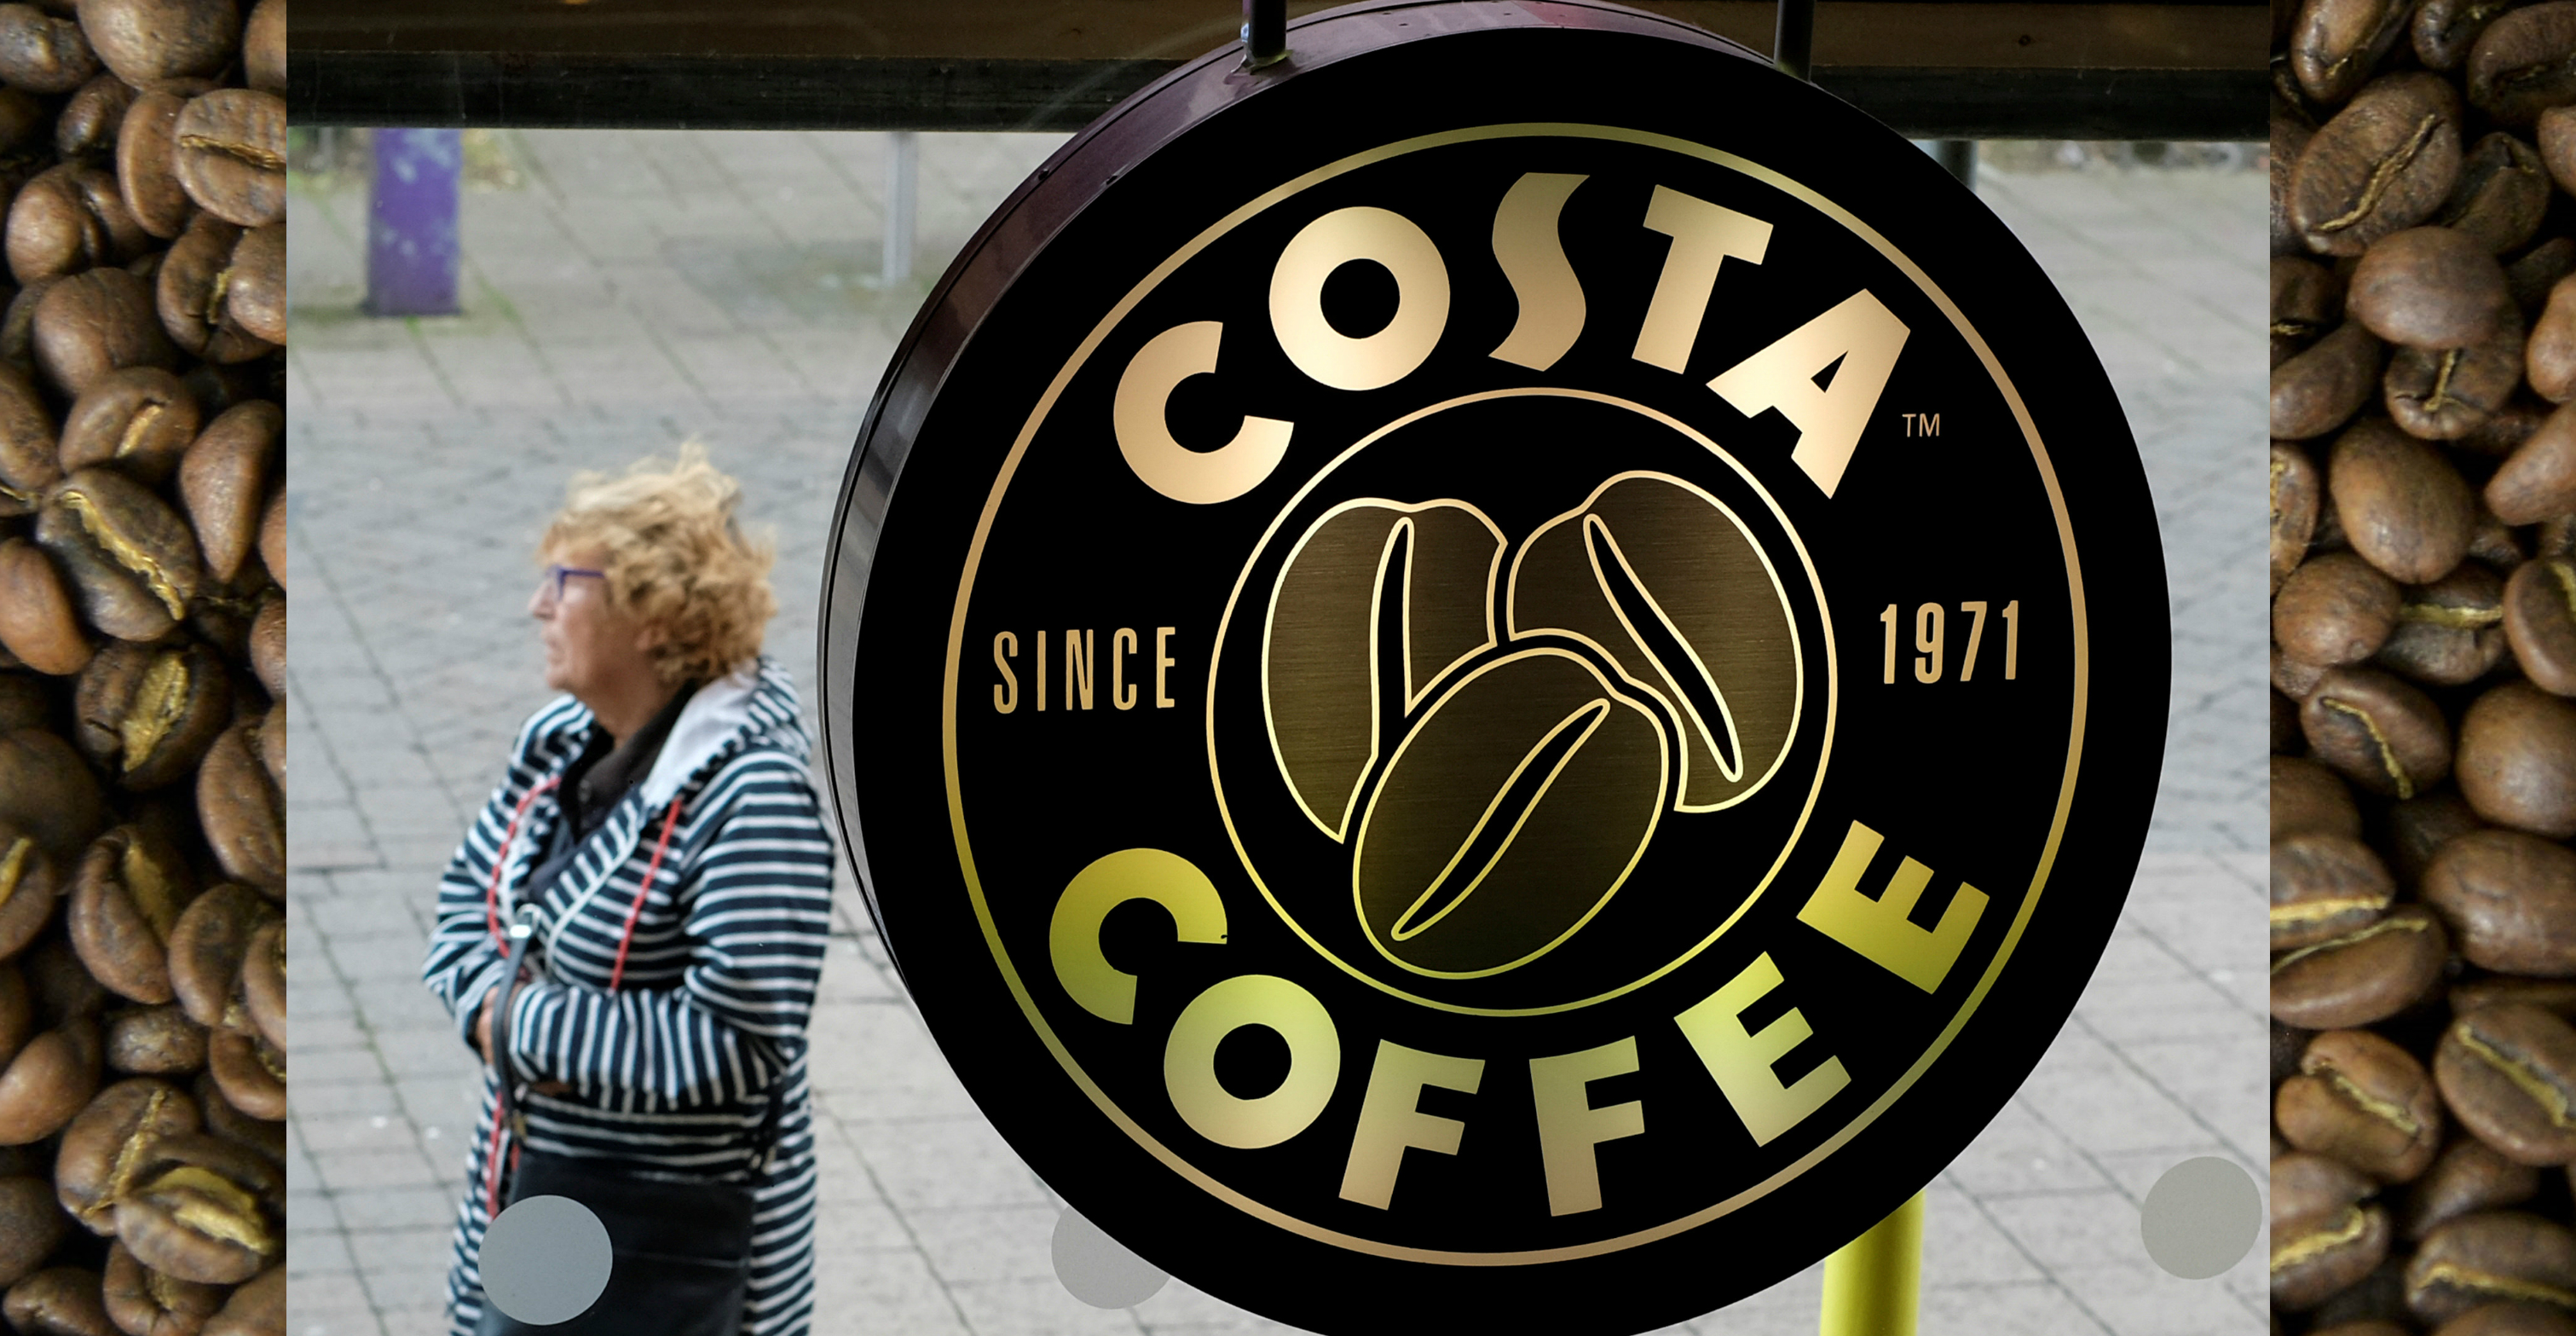 Costa currently has 2,422 outlets across Britain and a further 1,399 in international markets. Photo: Reuters/AFP